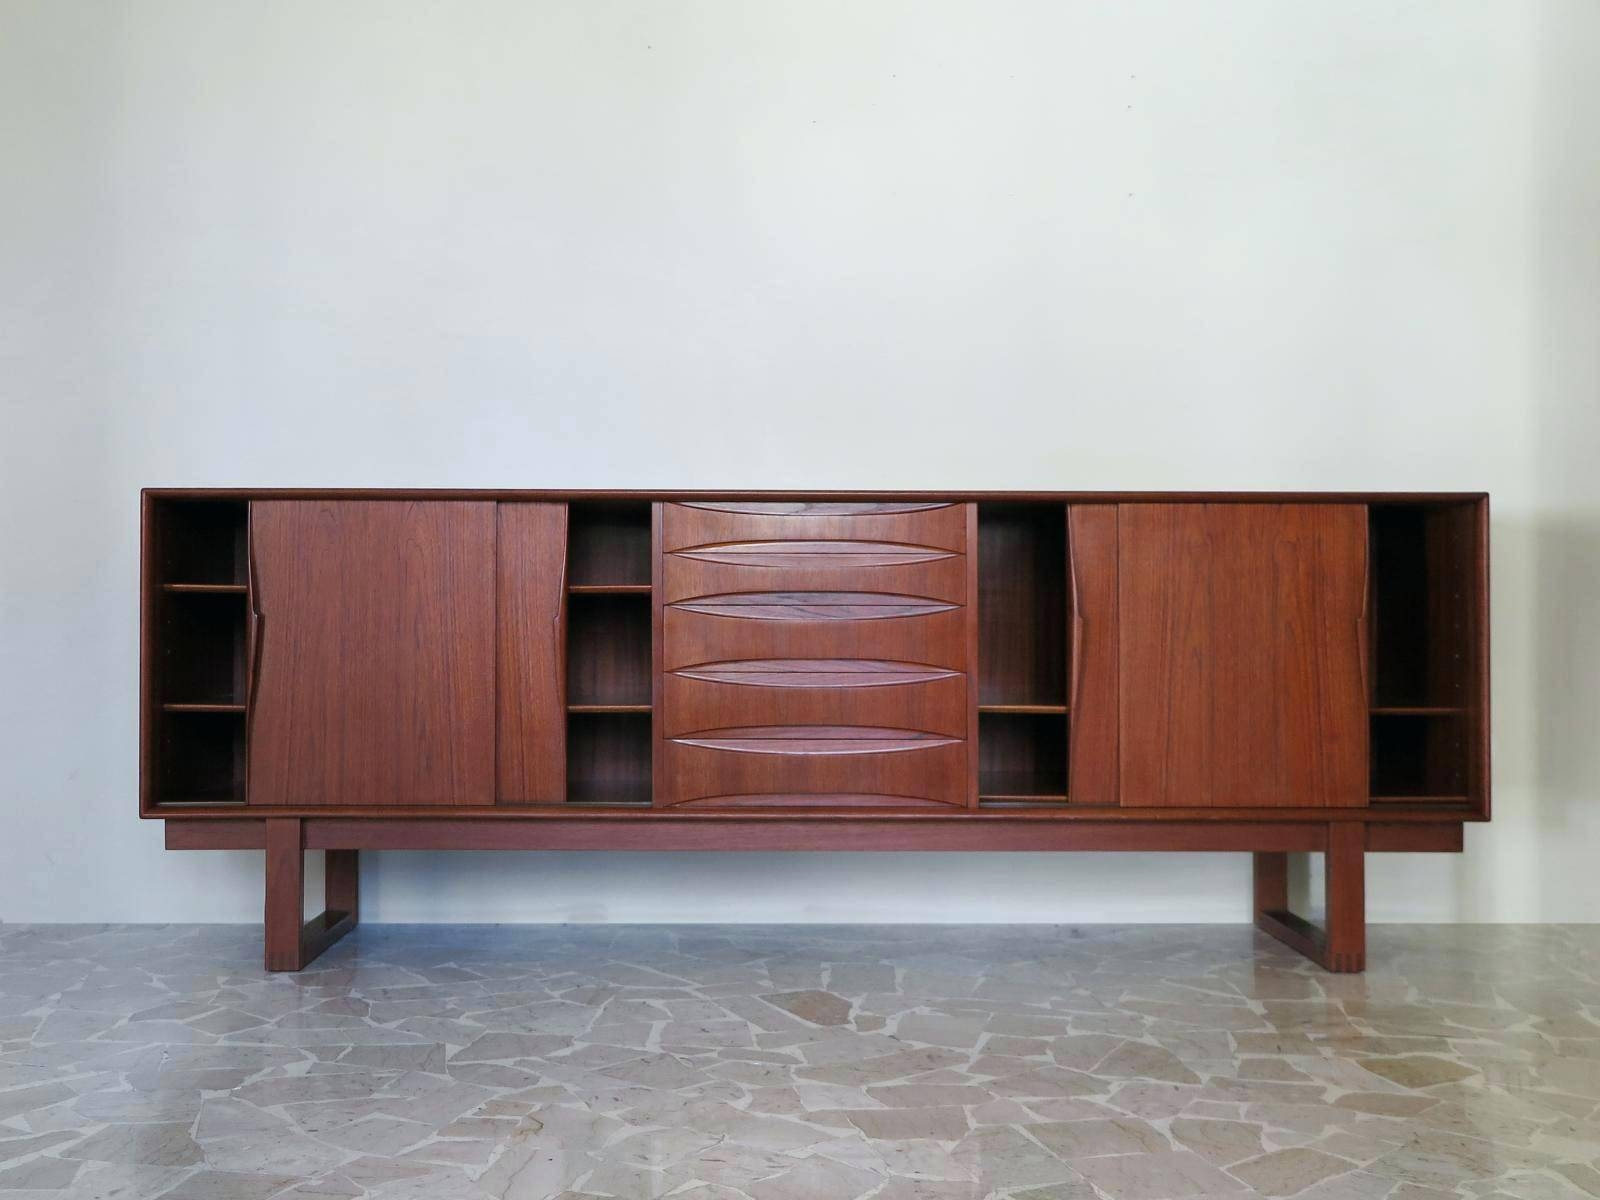 Sideboard Vintage Robert Heritage Rosewood Heals Retro Danish Intended For 2017 50s Sideboards (View 11 of 15)